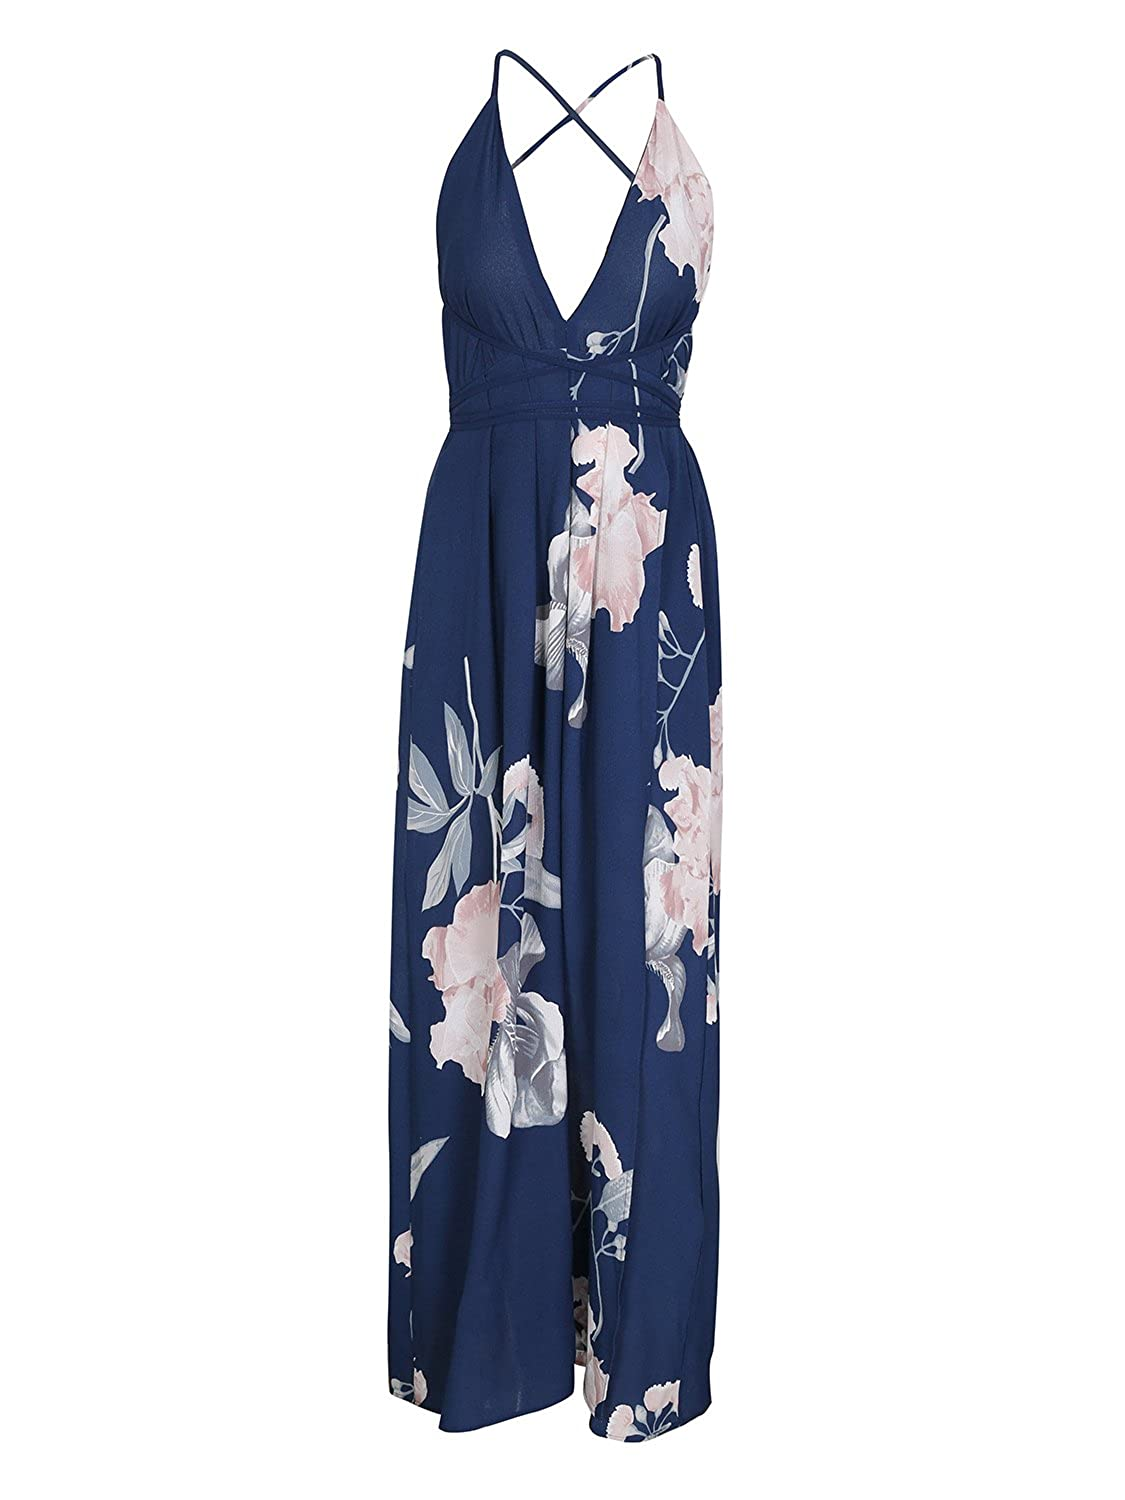 883e0f637341 BerryGo Women s Boho Backless Floral Beach Dress Sexy Split Maxi Dress at  Amazon Women s Clothing store